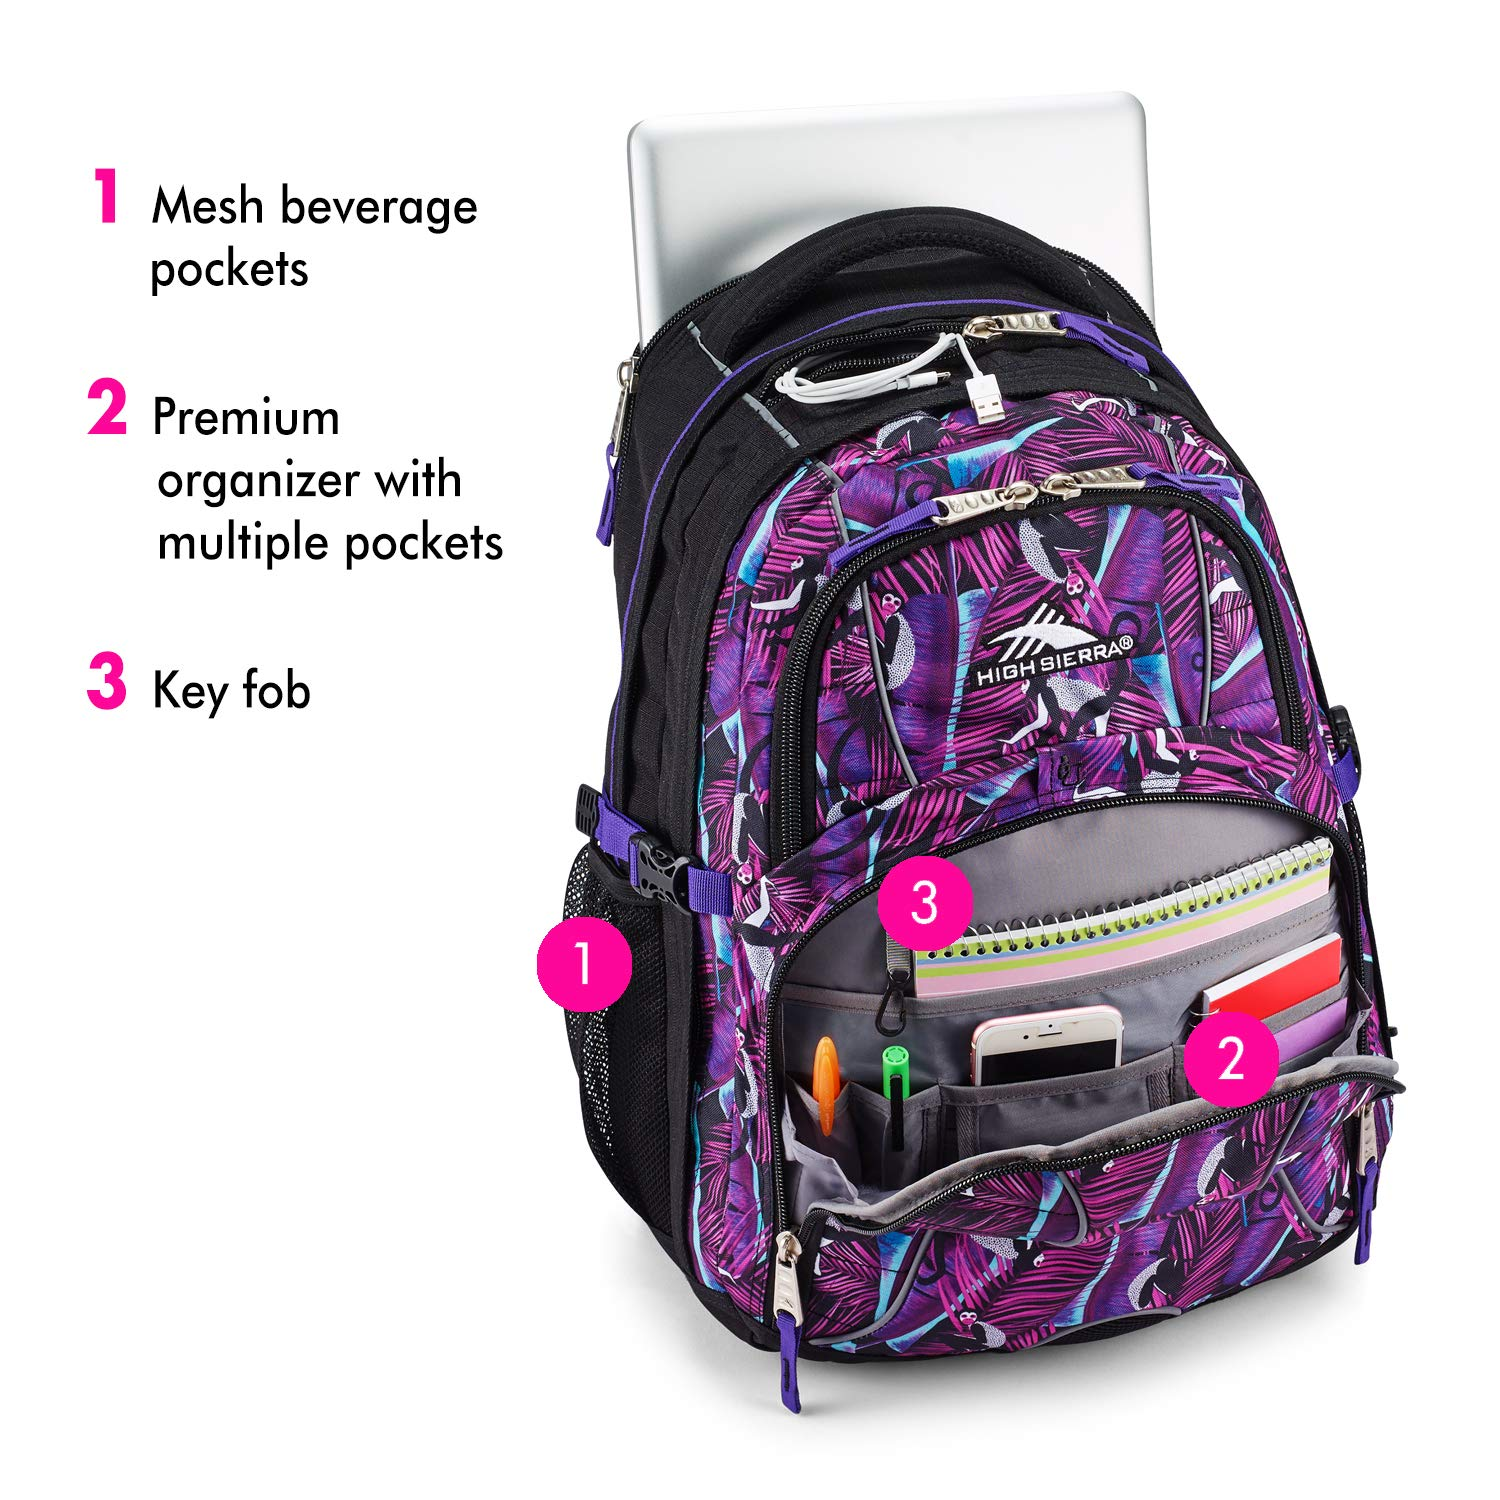 High Sierra Swerve Laptop Backpack, 17-inch Laptop Backpack for High School or College, Ideal Gaming Laptop Backpack, Large Compartment Student Laptop Backpack with Organizer Pocket by High Sierra (Image #3)